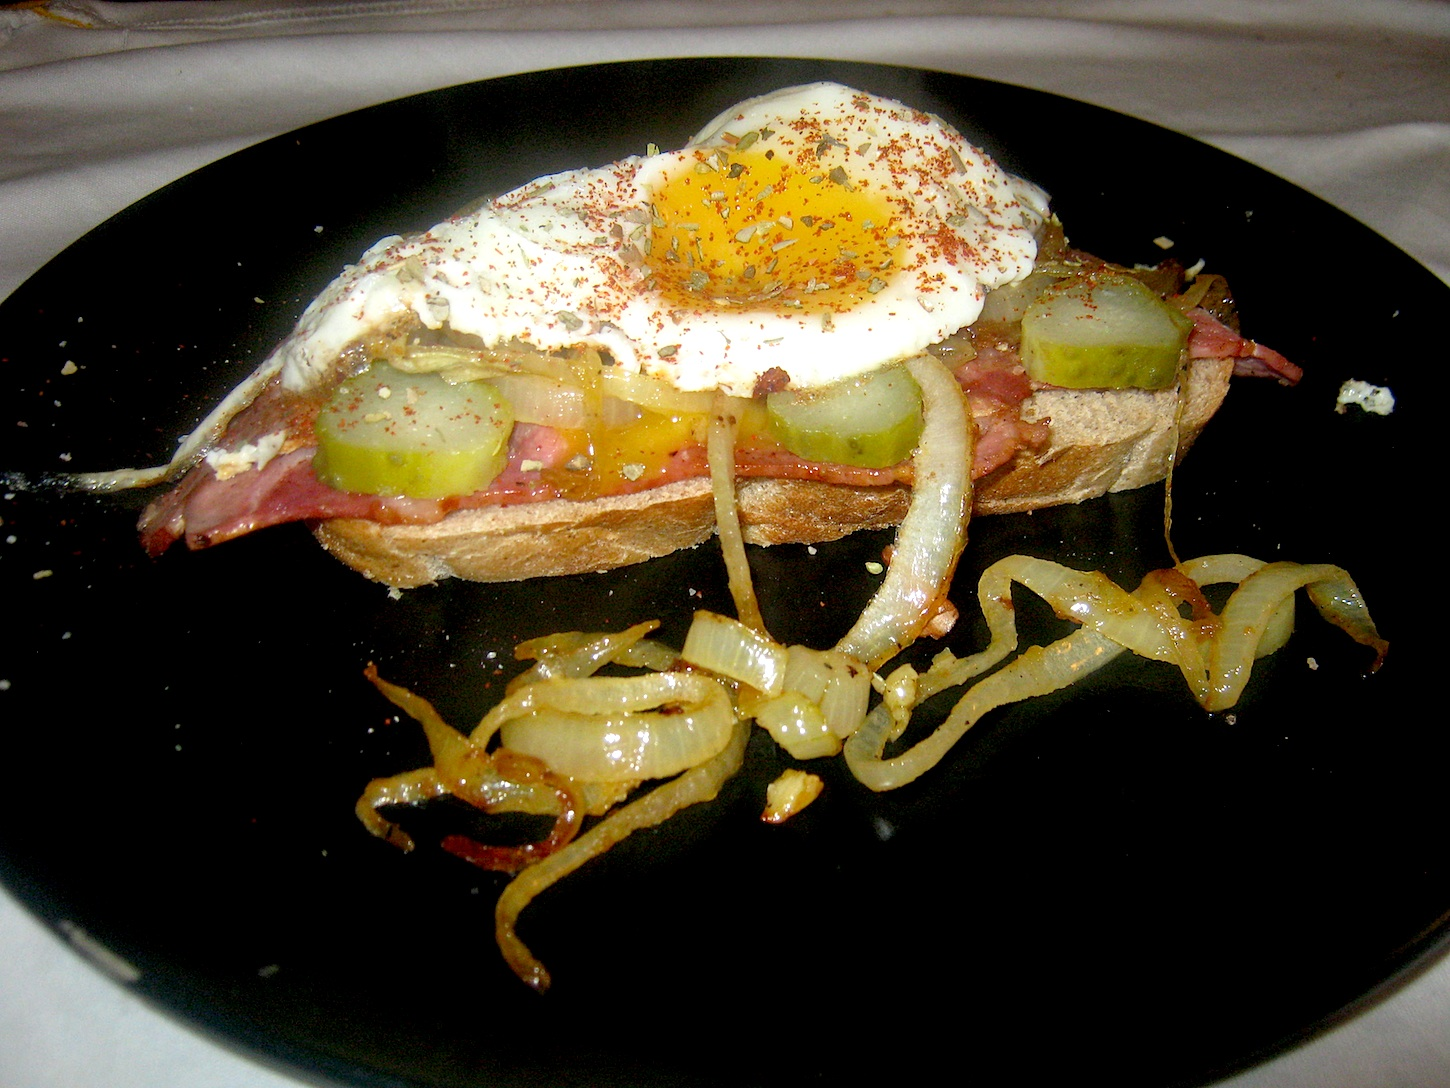 Strammer Max on 60% Rye bread with fryed onions, garlic, gherkins and sweet and sour mustard cucumbers